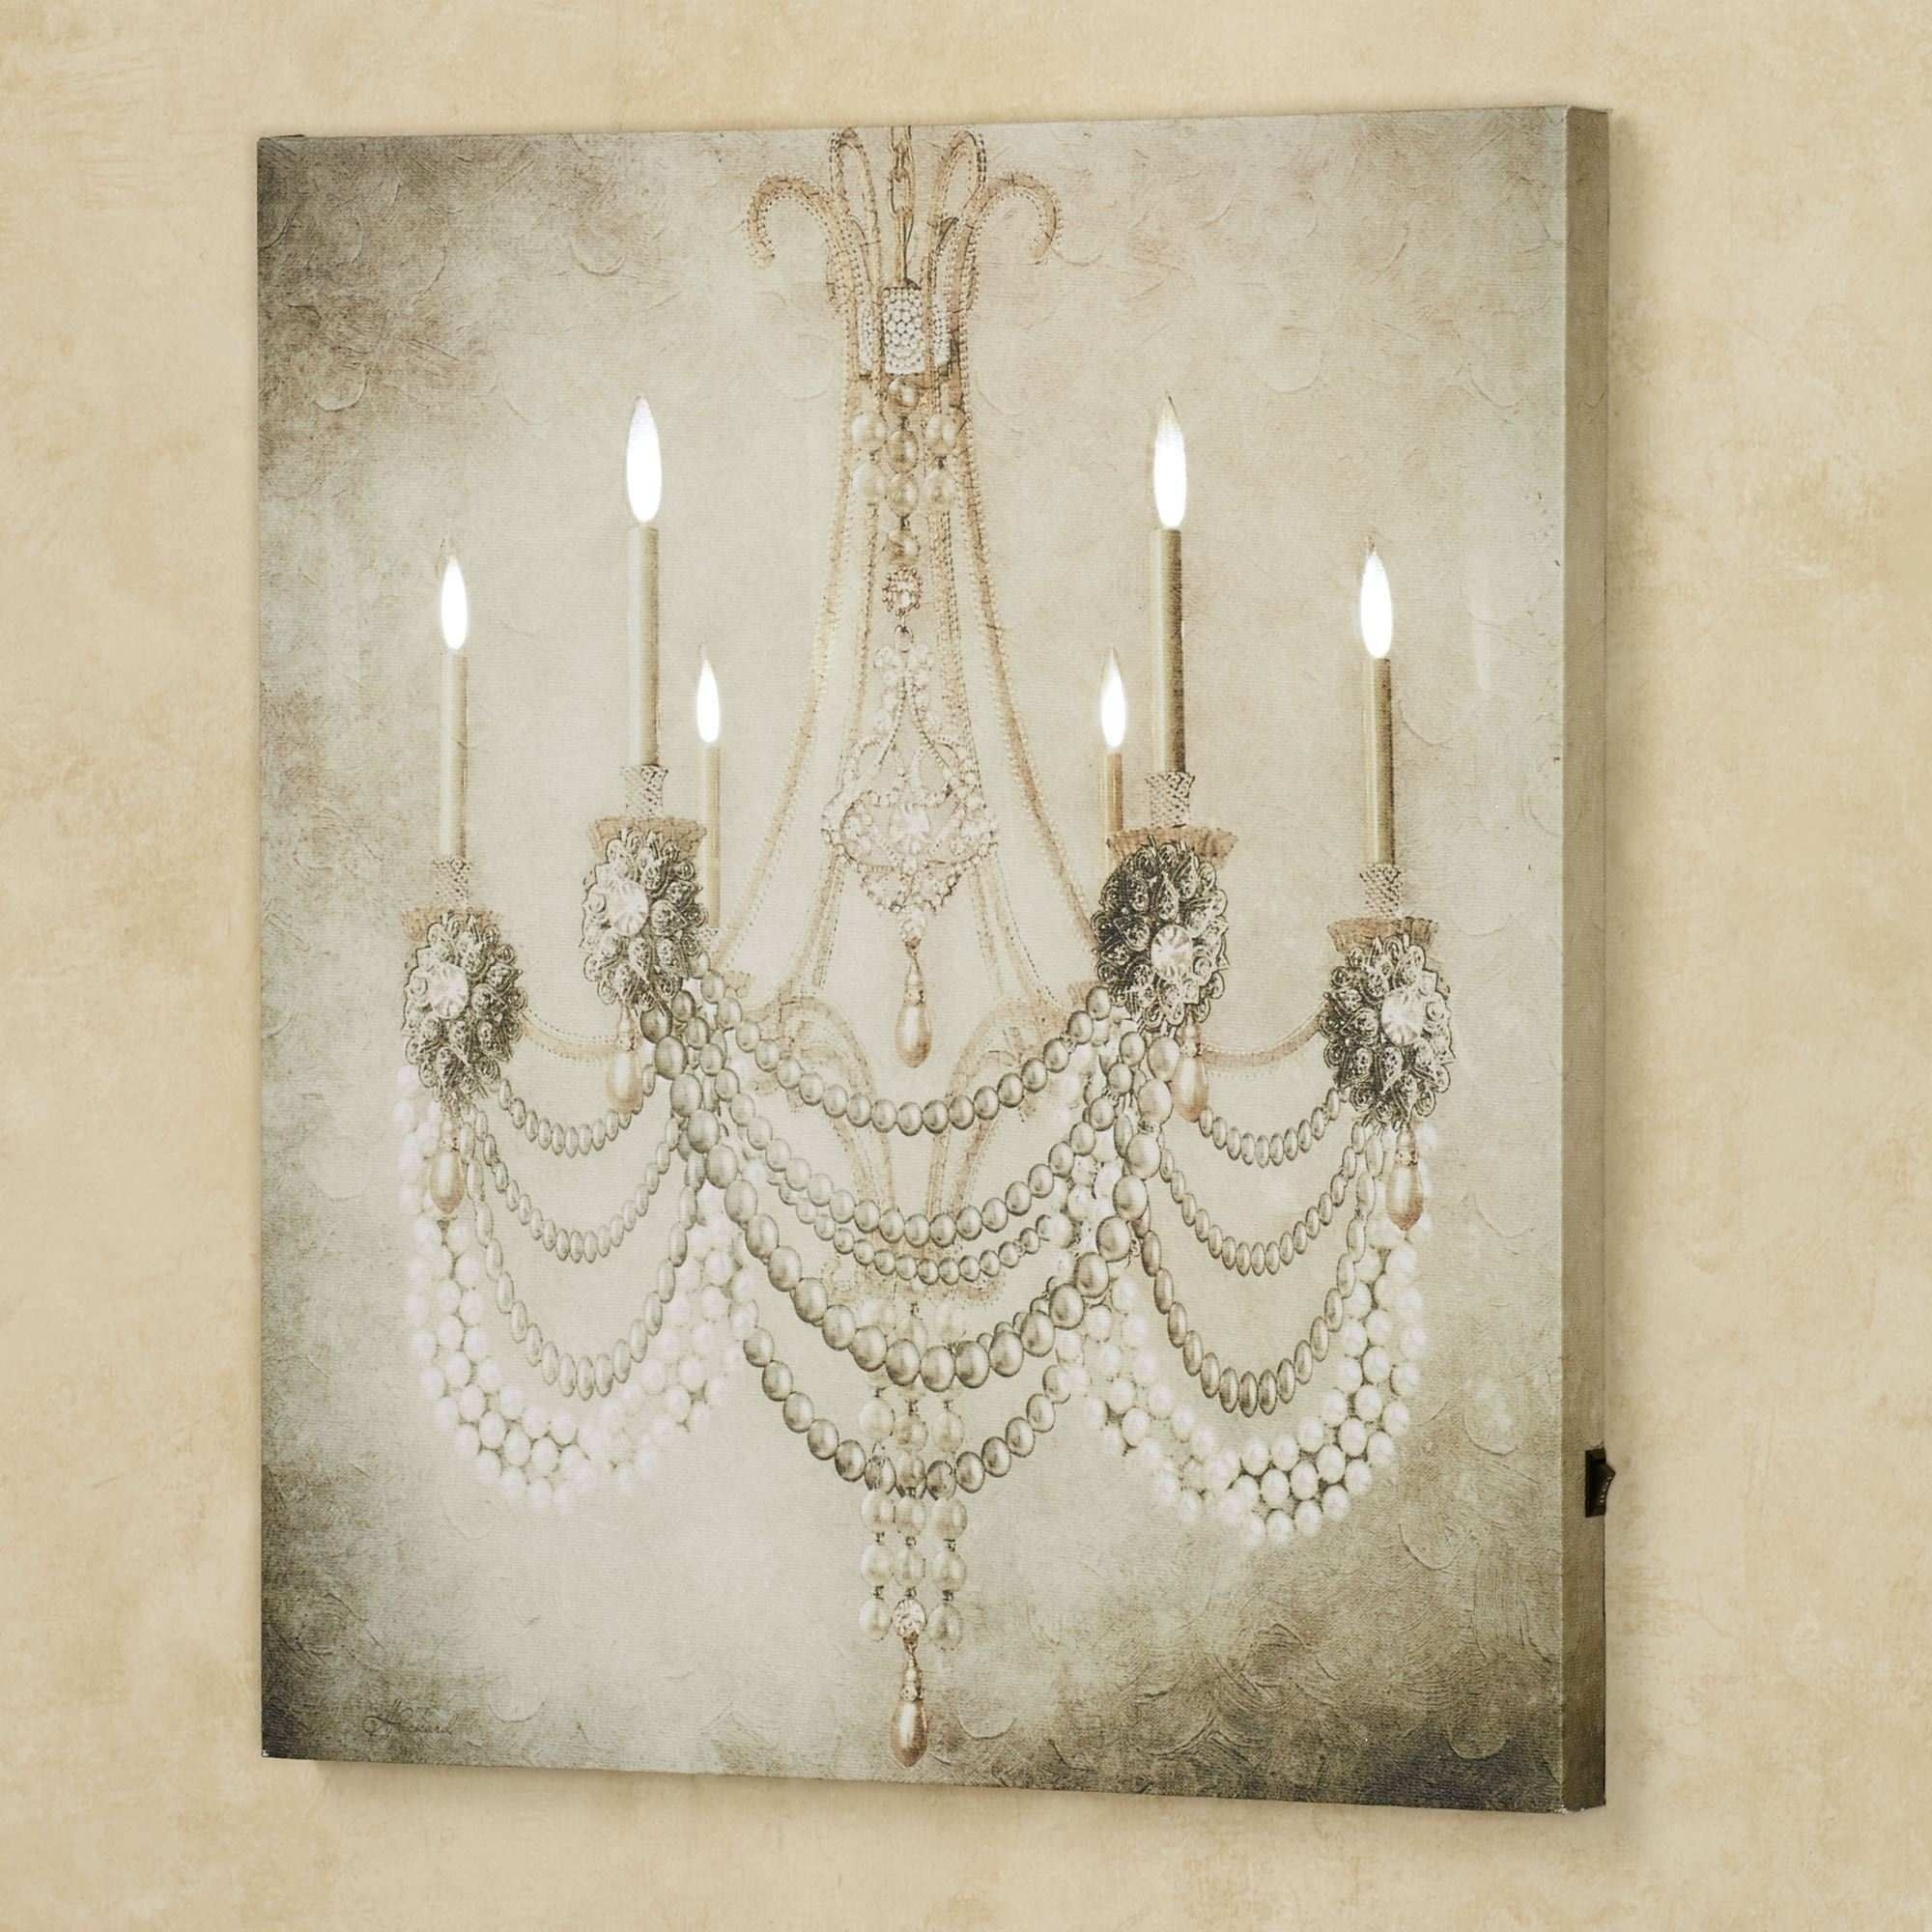 Chandelier Canvas Painting Unique Vintage Chandelier Led Lighted With Regard To Chandelier Wall Art (View 4 of 20)